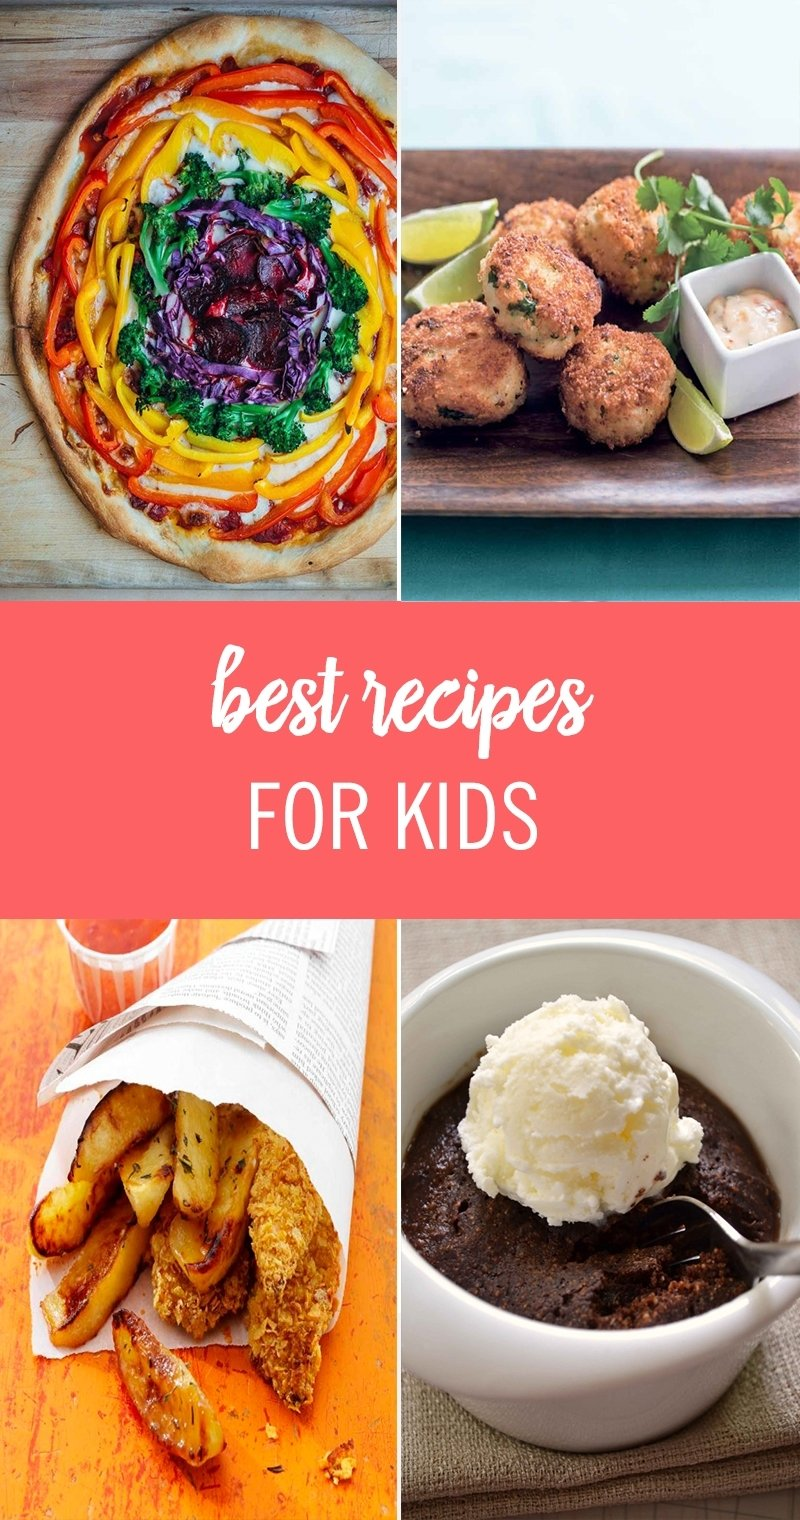 10 Pretty Healthy Lunch Ideas For Picky Eaters cooking for kids 50 best recipes for kids and picky eaters 29 2020